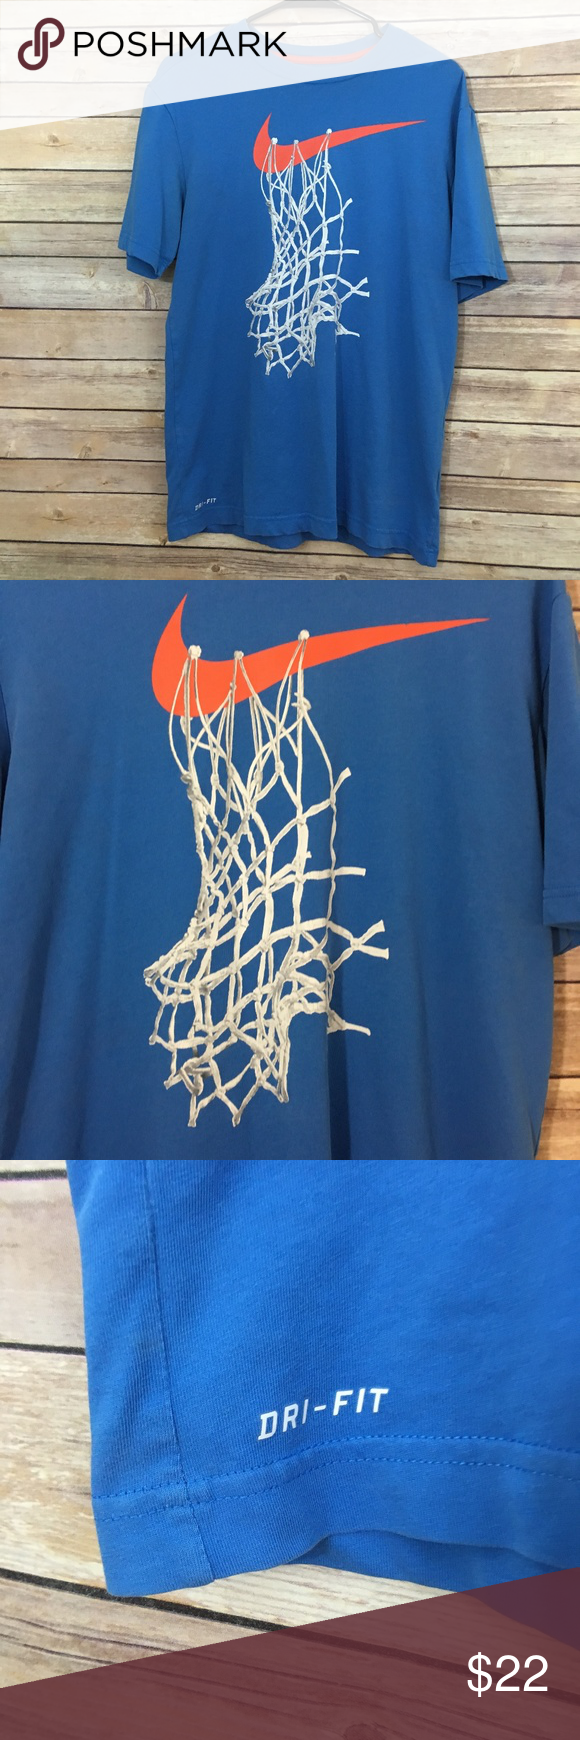 fa3d78bc6853 Nike DRI-FIT Graphic Basketball Net Tee Set yourself up for success with  the Nike